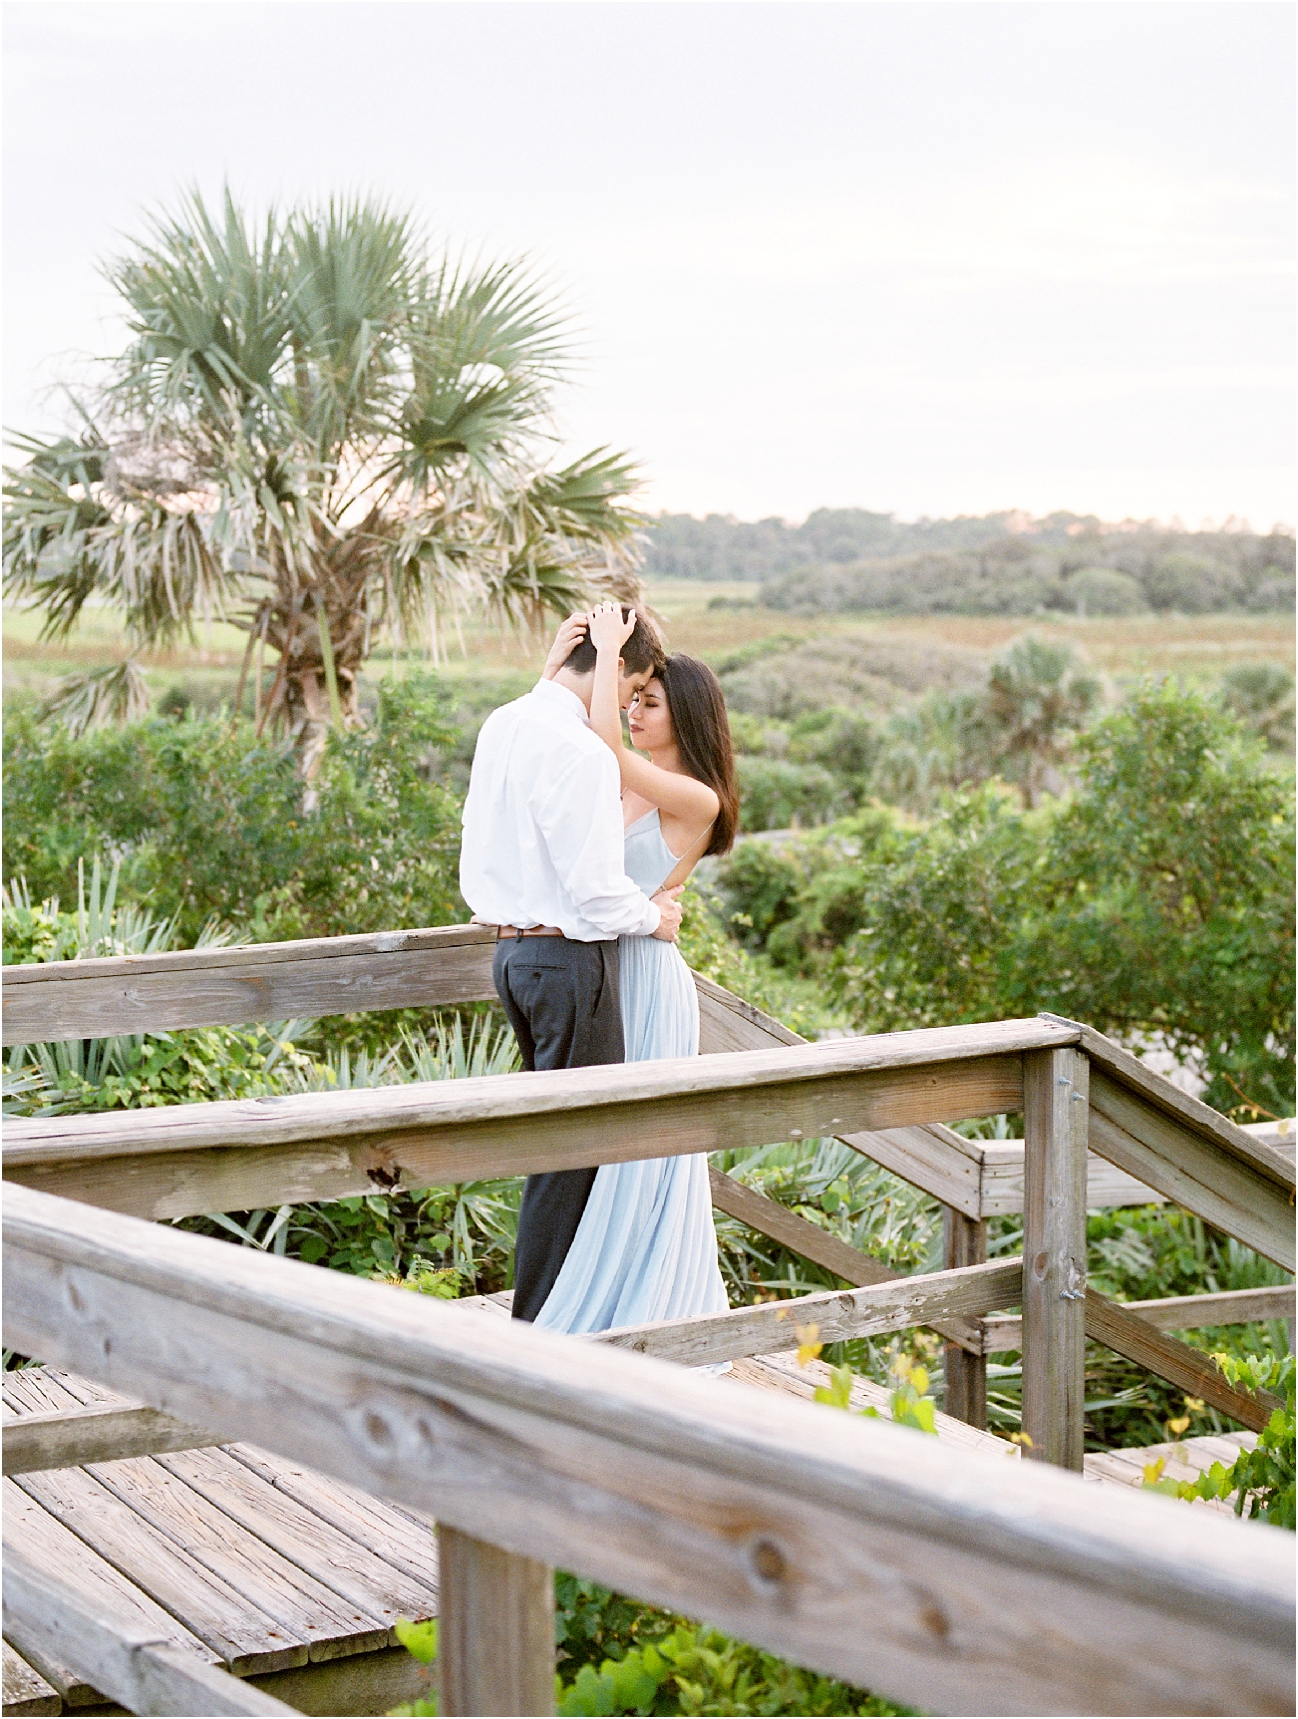 Lisa Silva Photography- Ponte Vedra Beach, St. Augustine and Jacksonville, Florida Fine Art Film Wedding Photography- Sunset Engagement Session at  Guana Beach State Park_0026.jpg